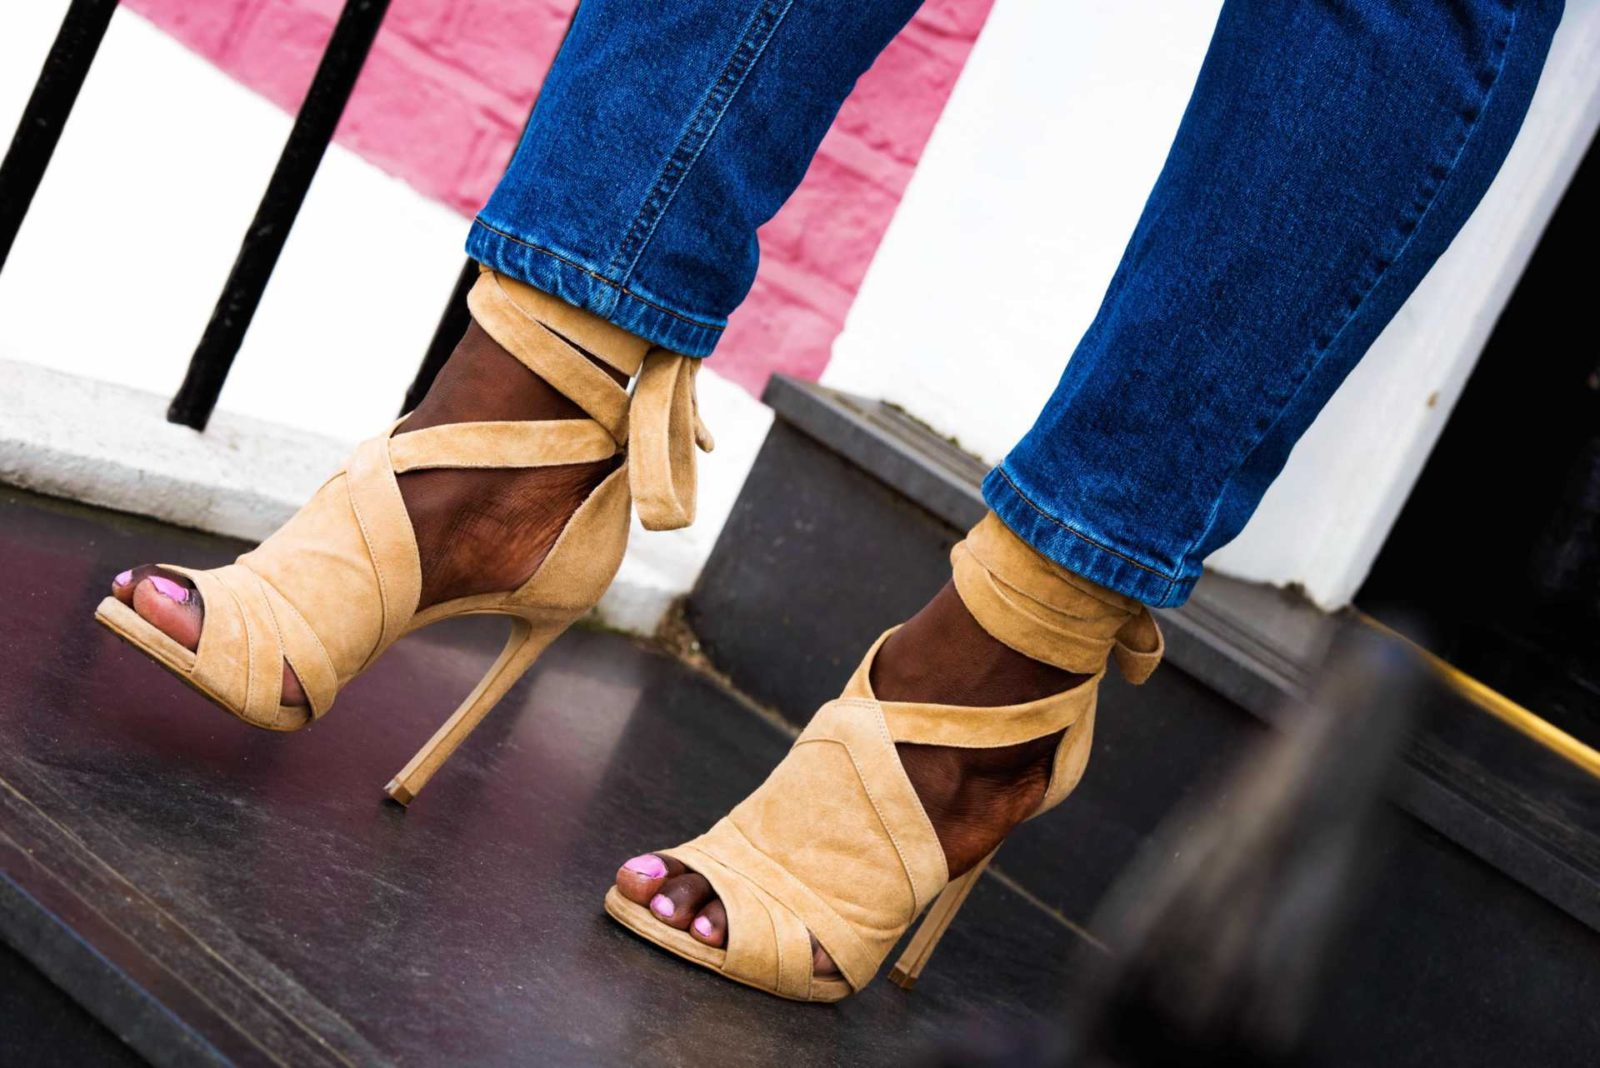 River Island Shoes - Style and the Sass